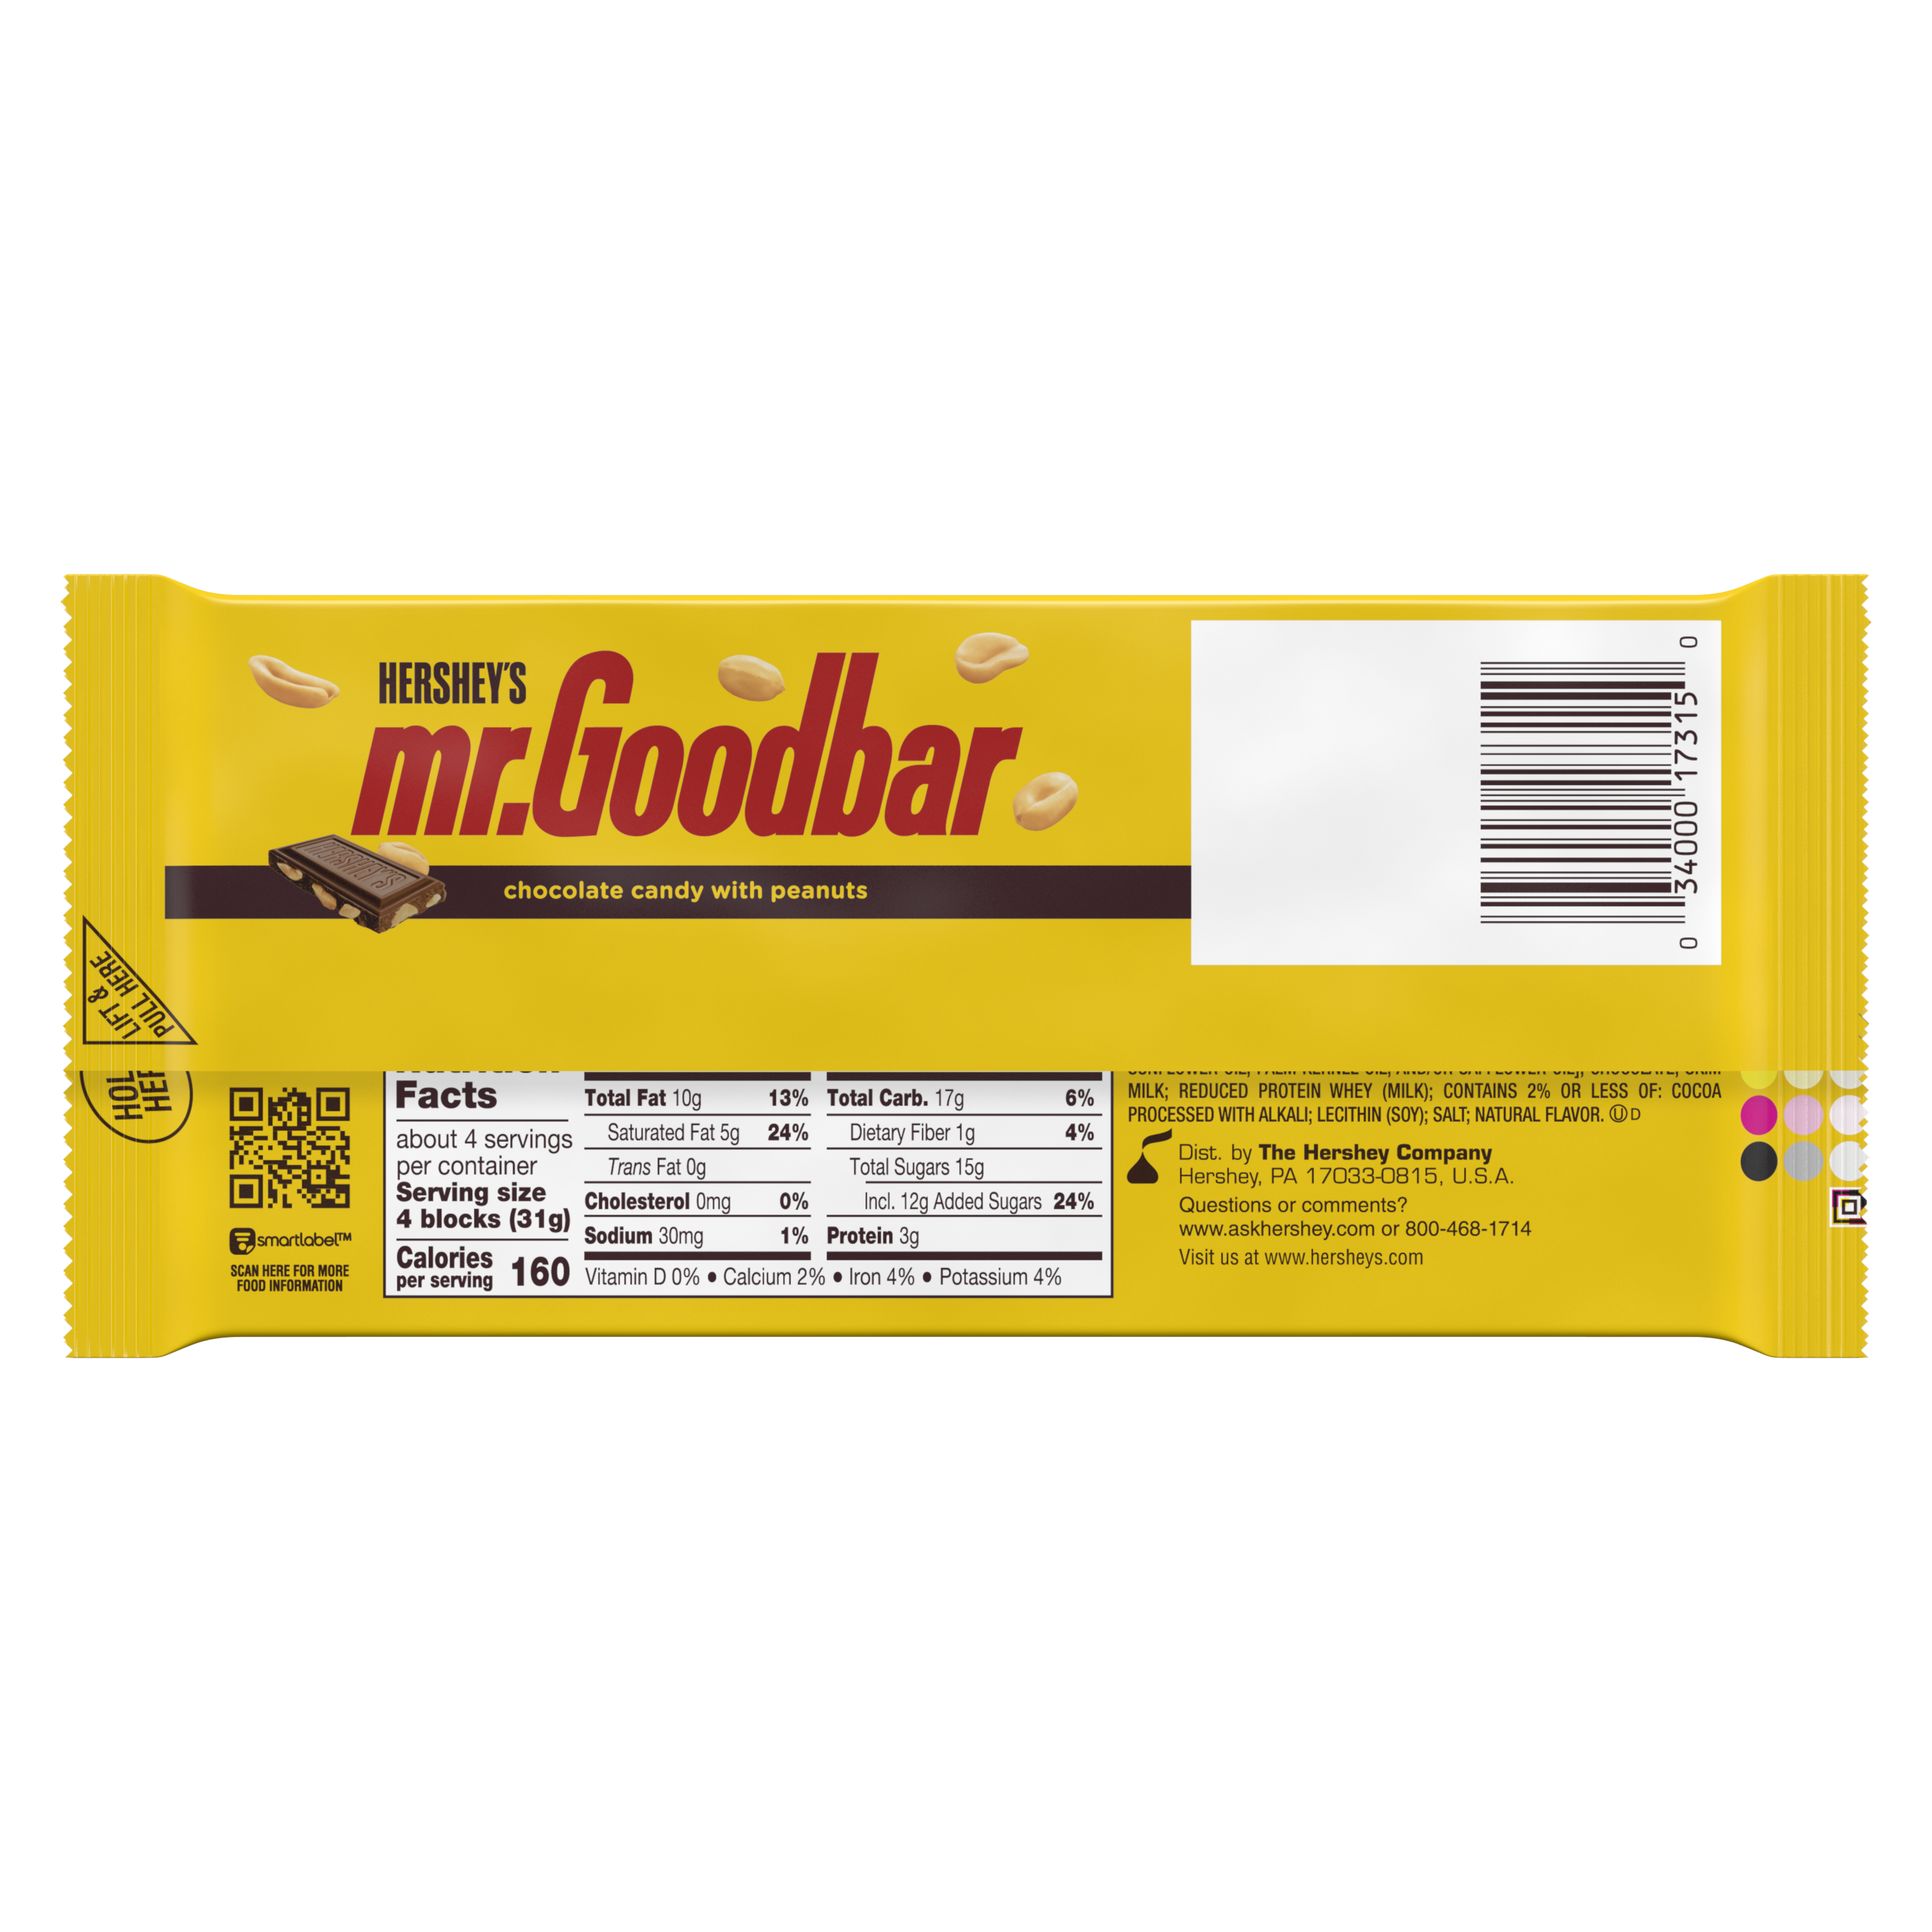 HERSHEY'S MR. GOODBAR Milk Chocolate with Peanuts XL Candy Bar, 4.4 oz - Back of Package